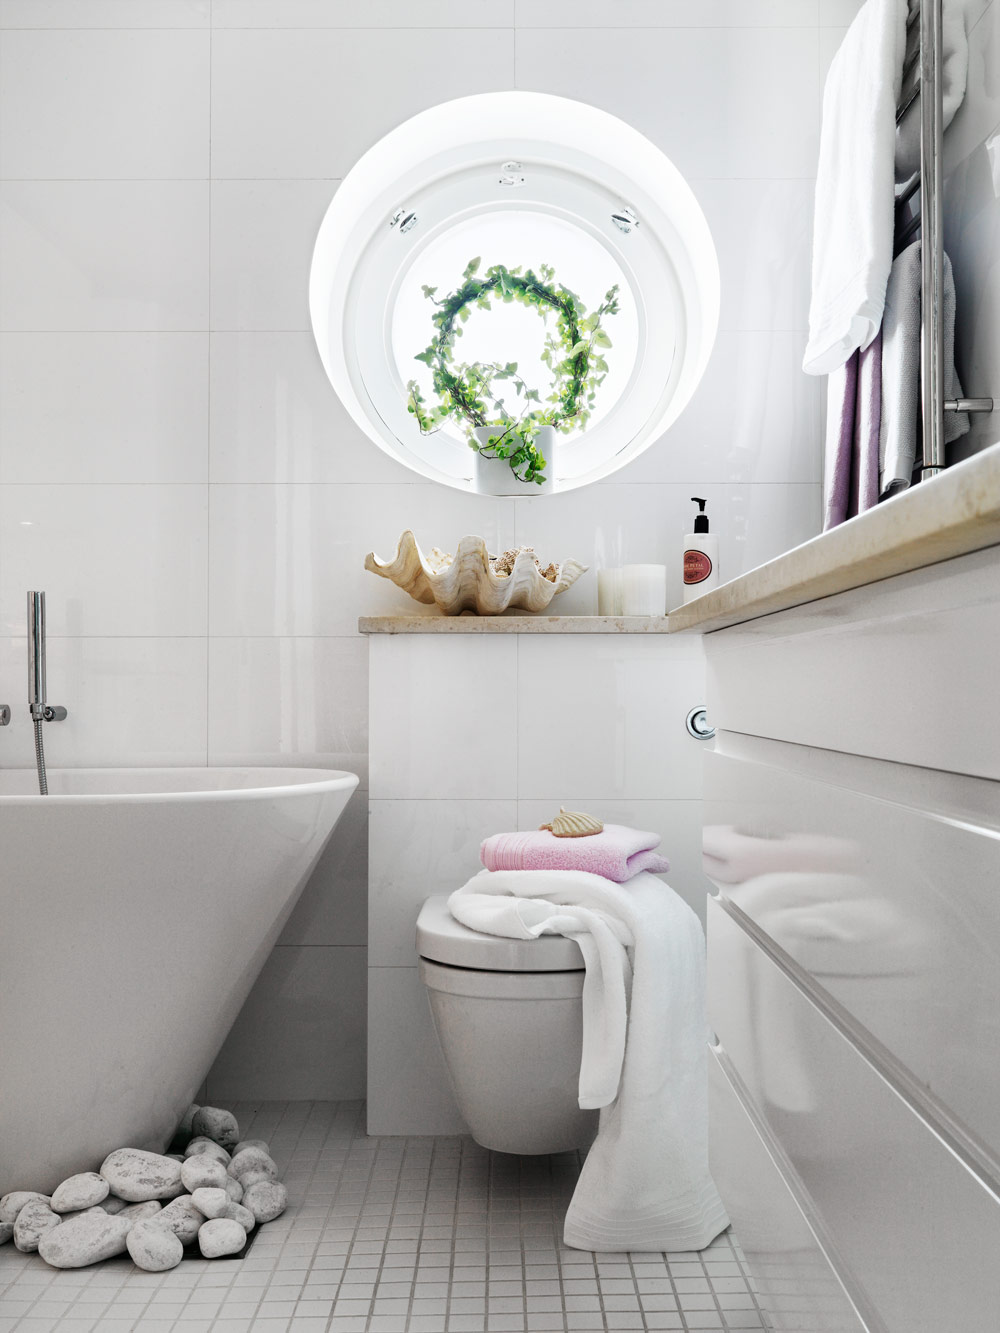 Stylish small bathroom with an unusual decor digsdigs for Pictures of small bathroom designs